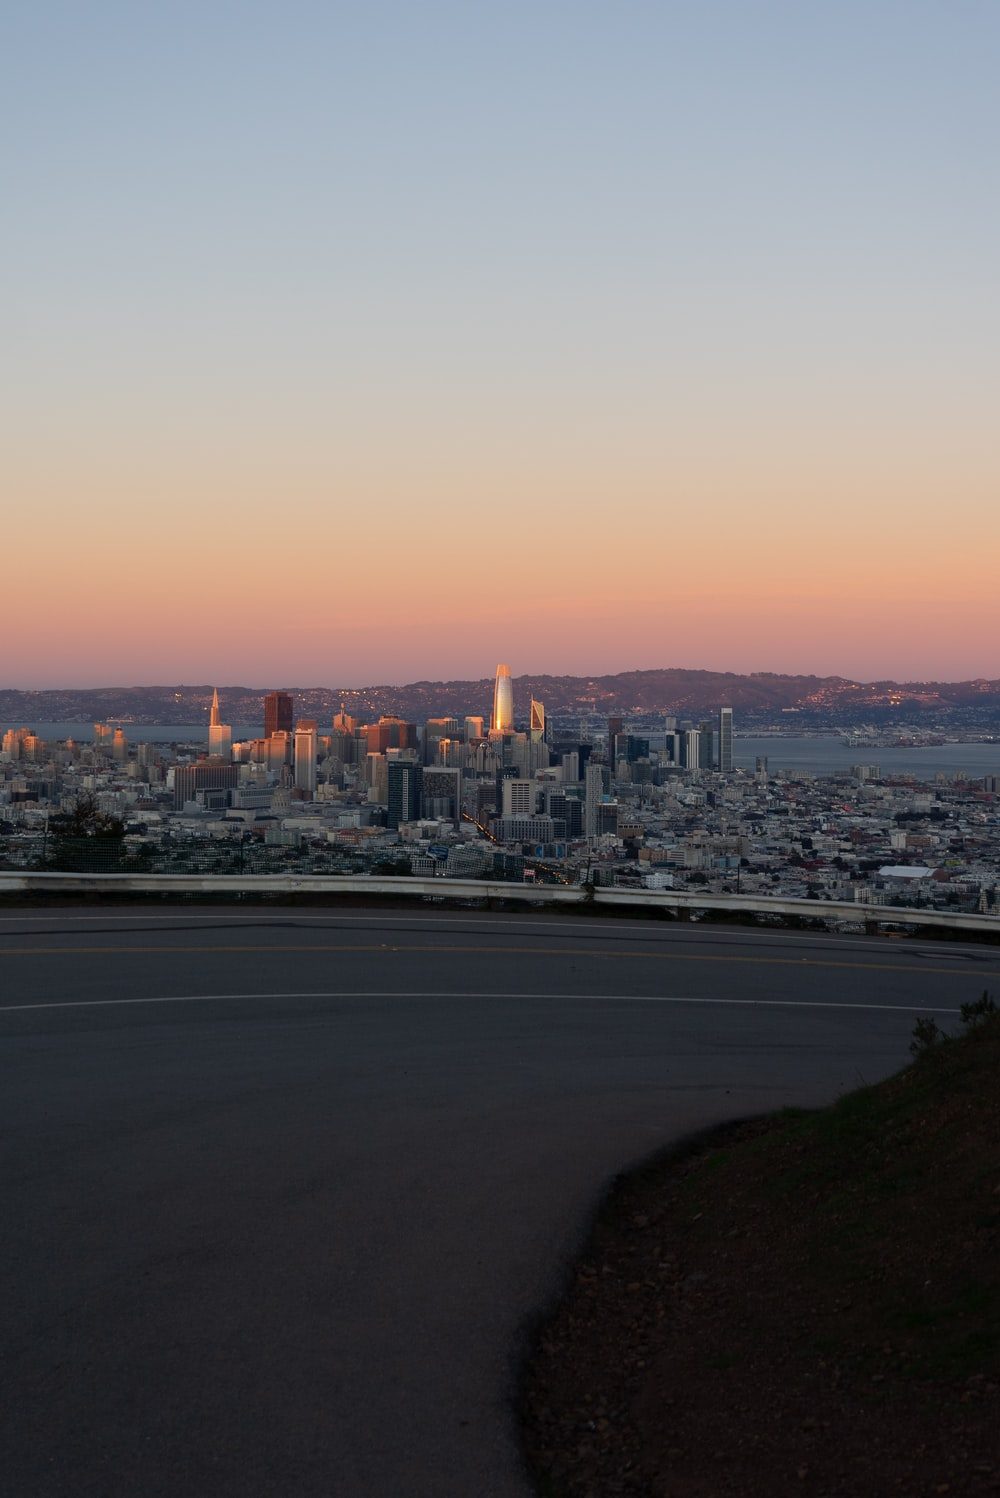 city skyline during sunset with city buildings